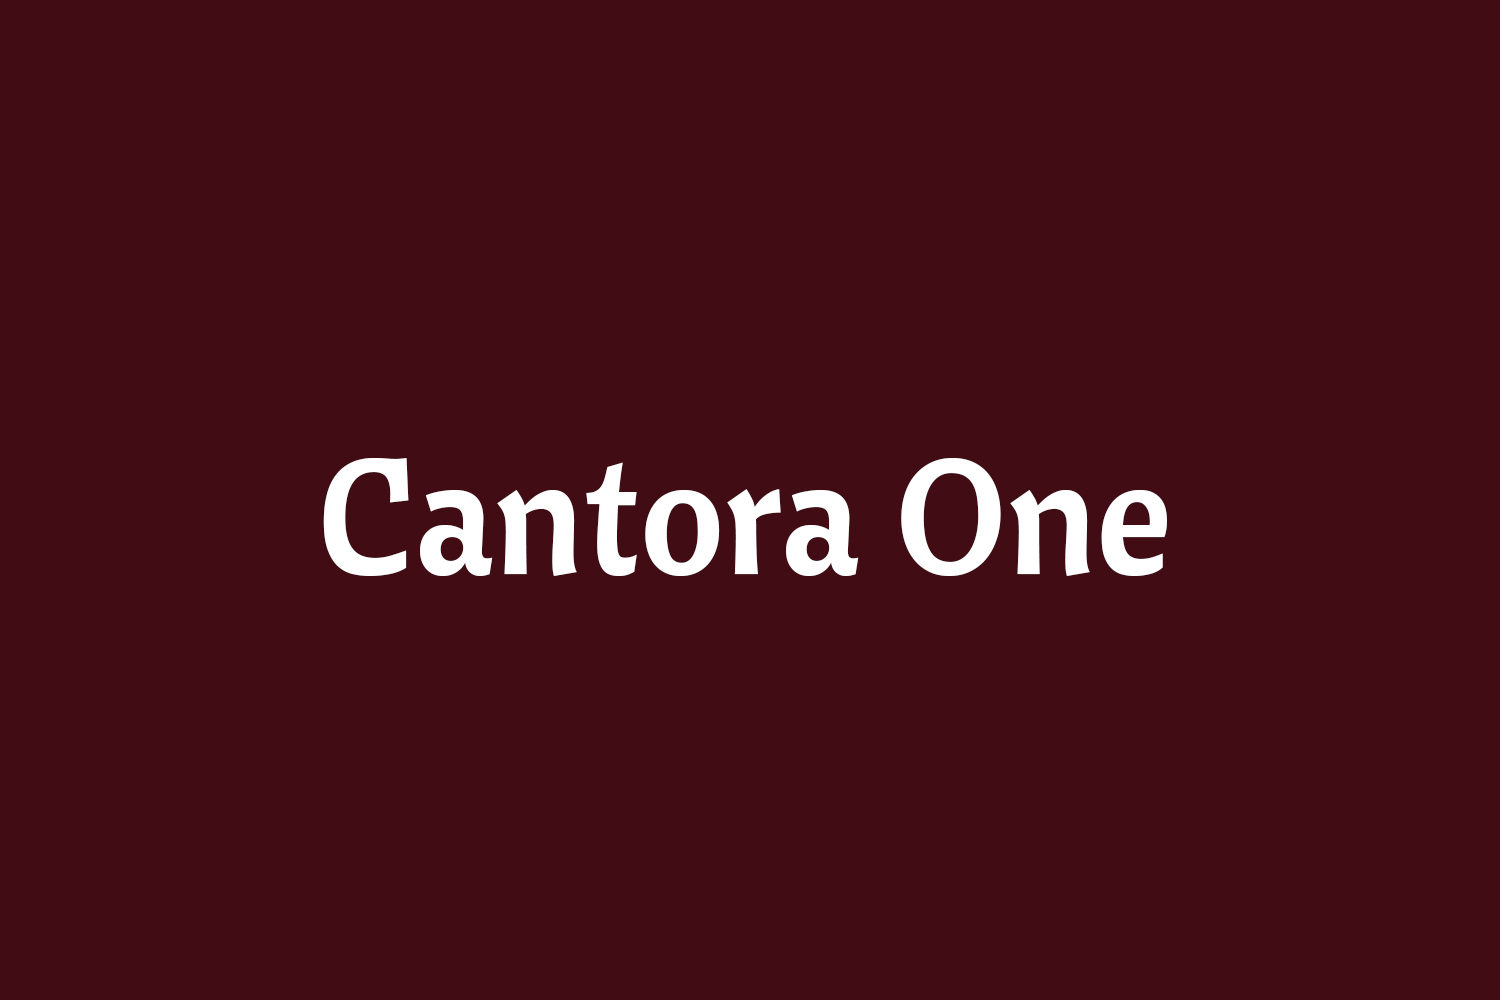 Cantora One